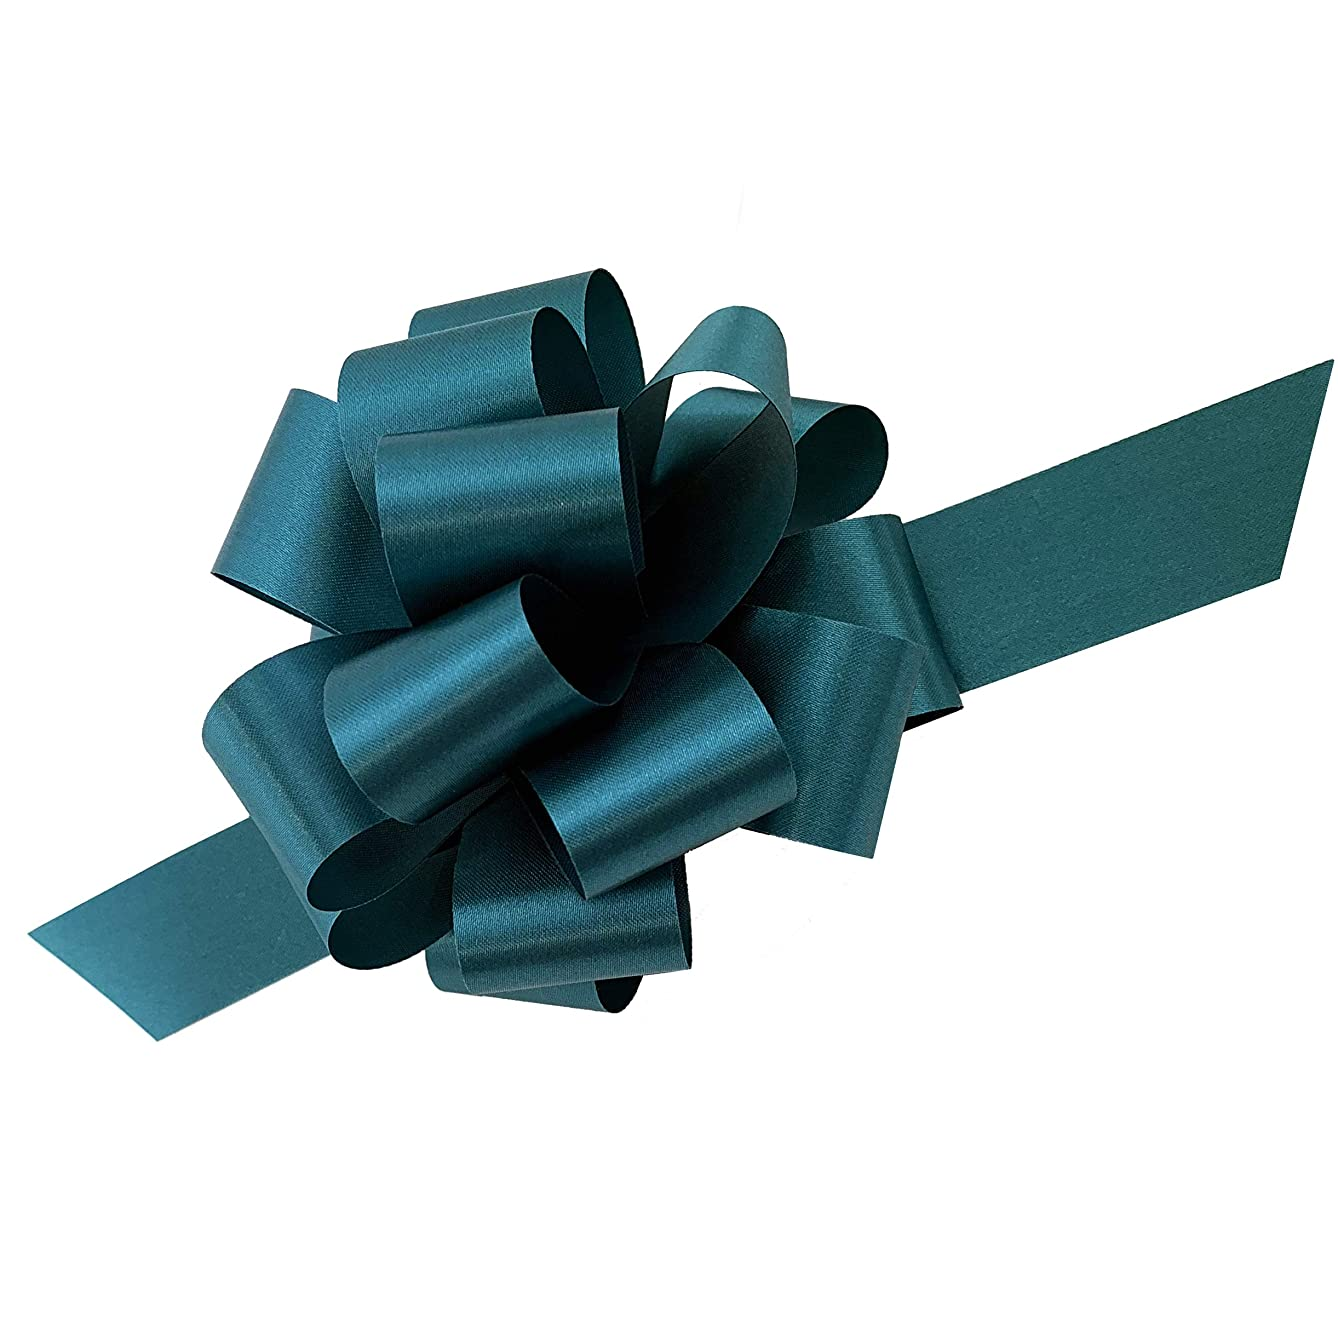 Teal Decorative Gift Pull Bows - 5